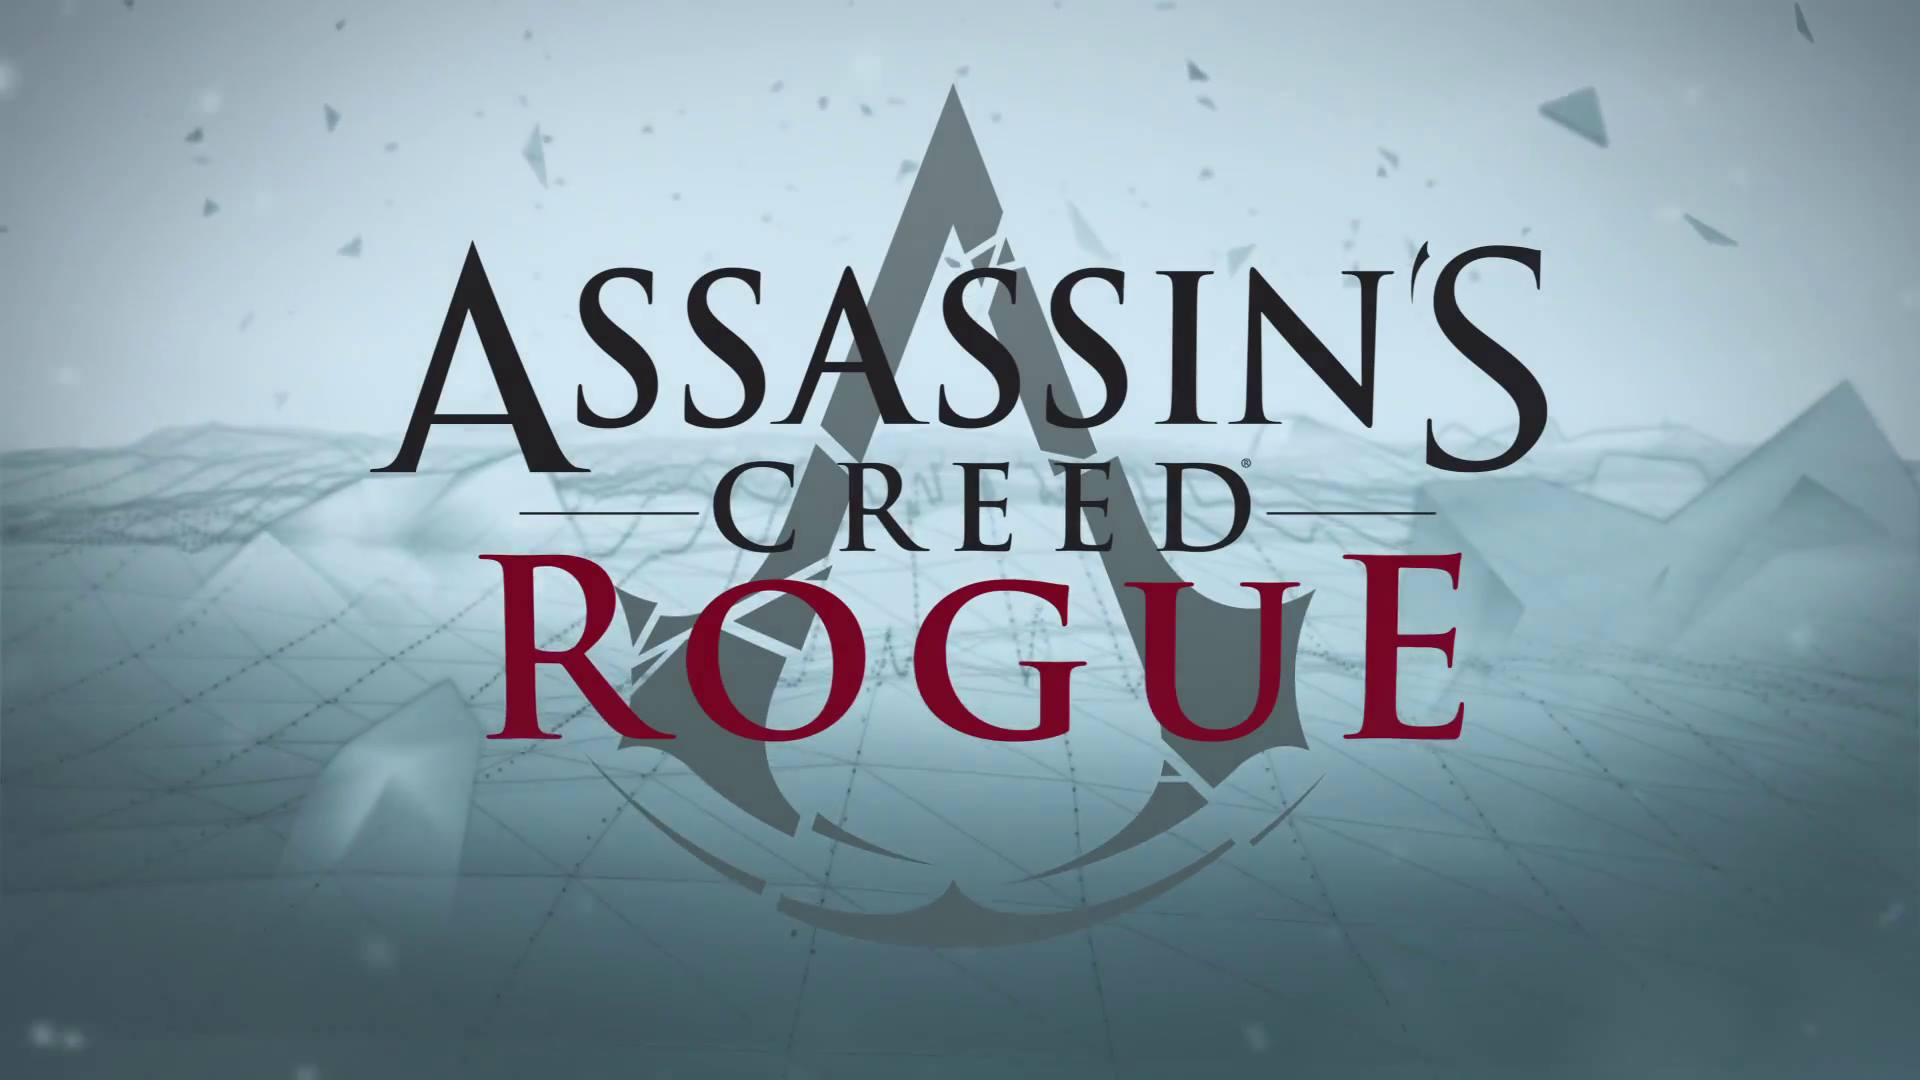 Assassin S Creed Rogue Is Announced News Mod Db